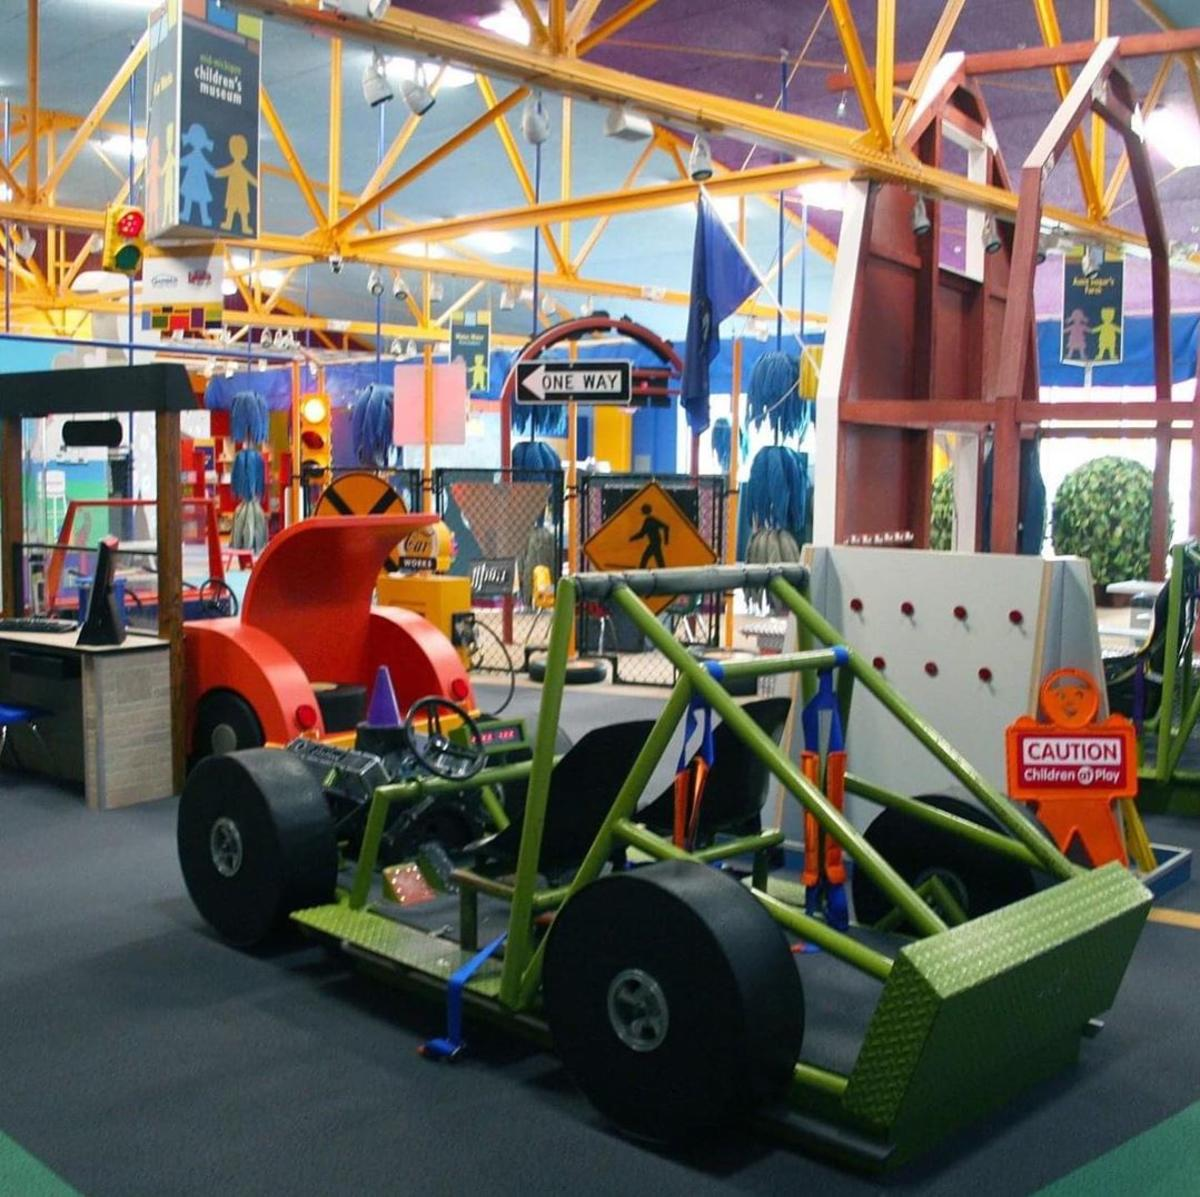 Colorful exhibits at the Mid-Michigan Children's Museum in Saginaw